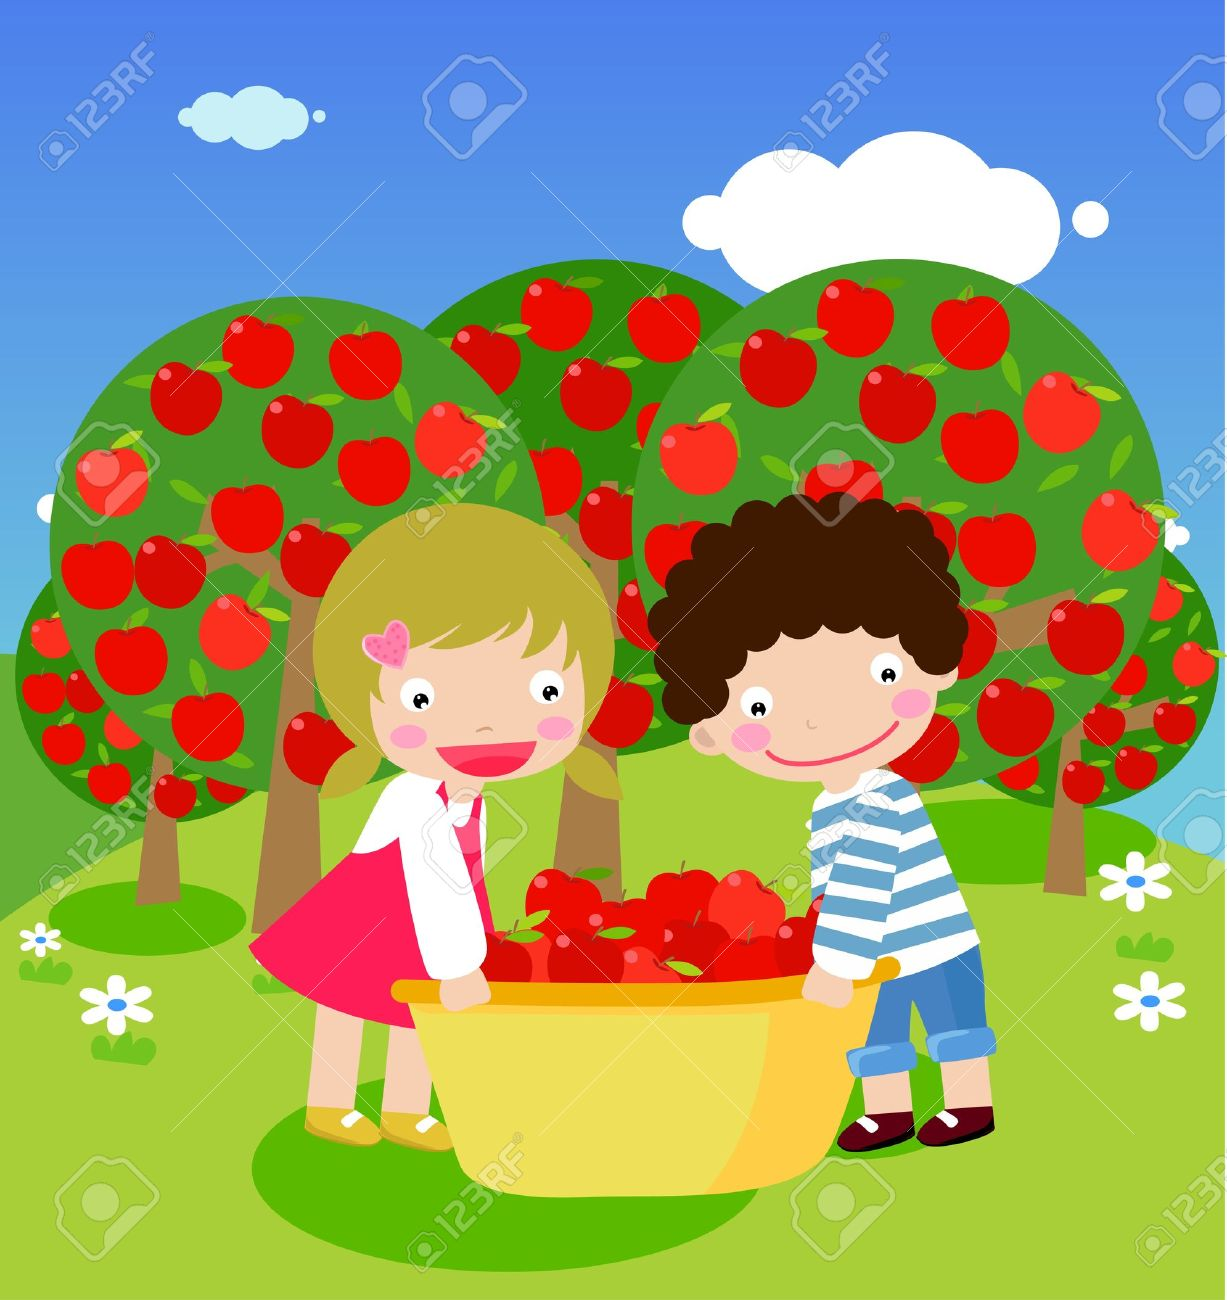 Cherry picking clipart.